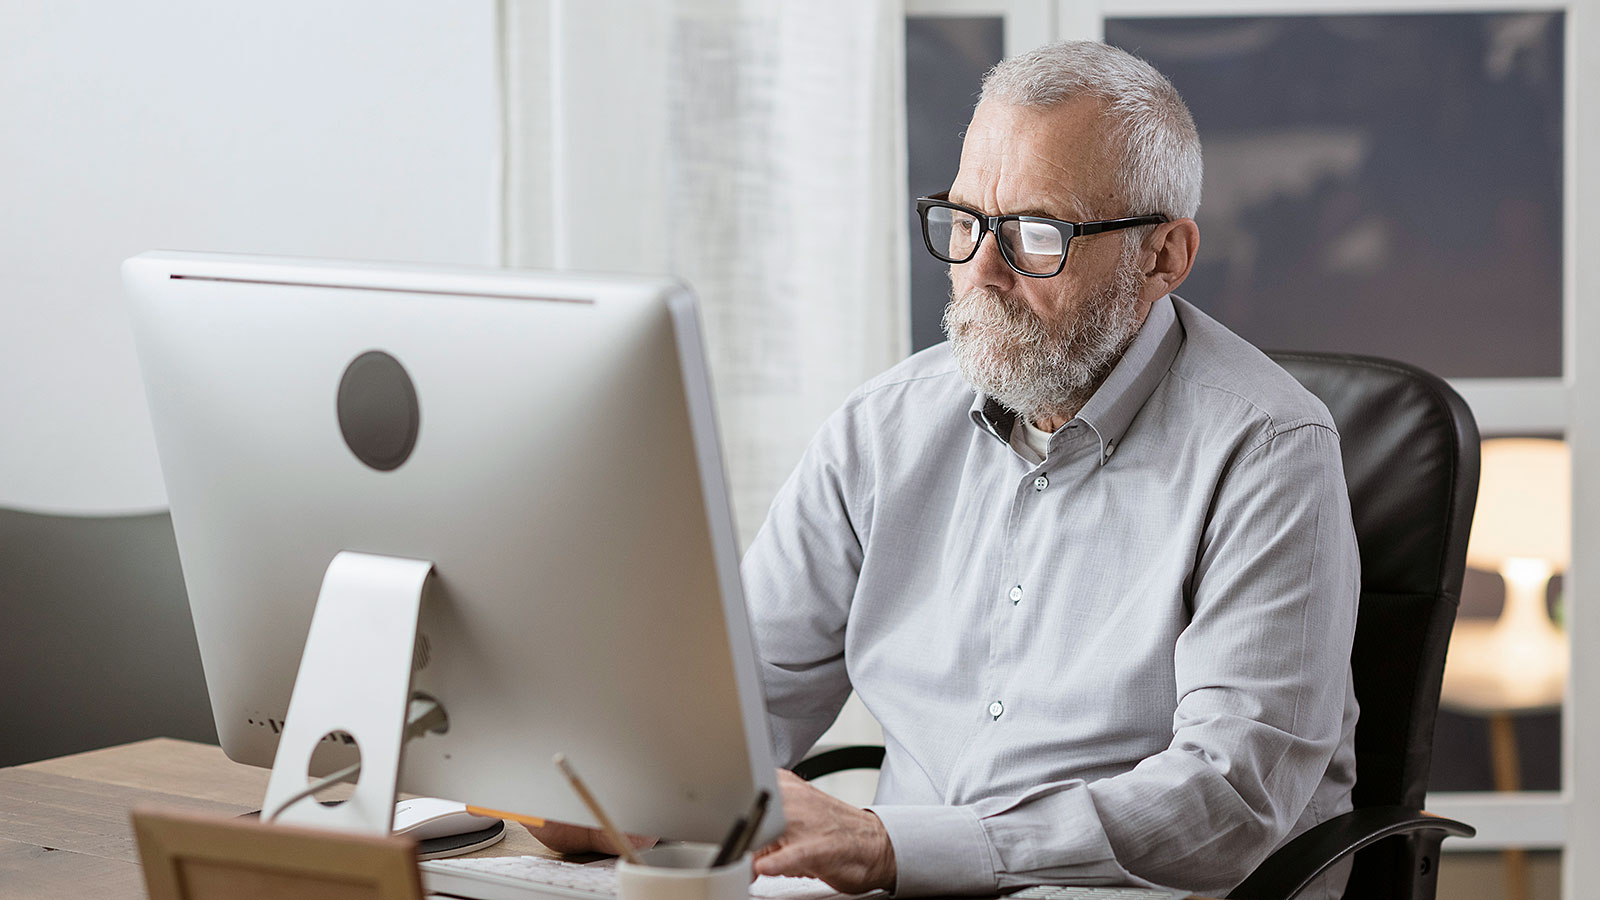 4 things you need to know if you're planning to work into your 70s